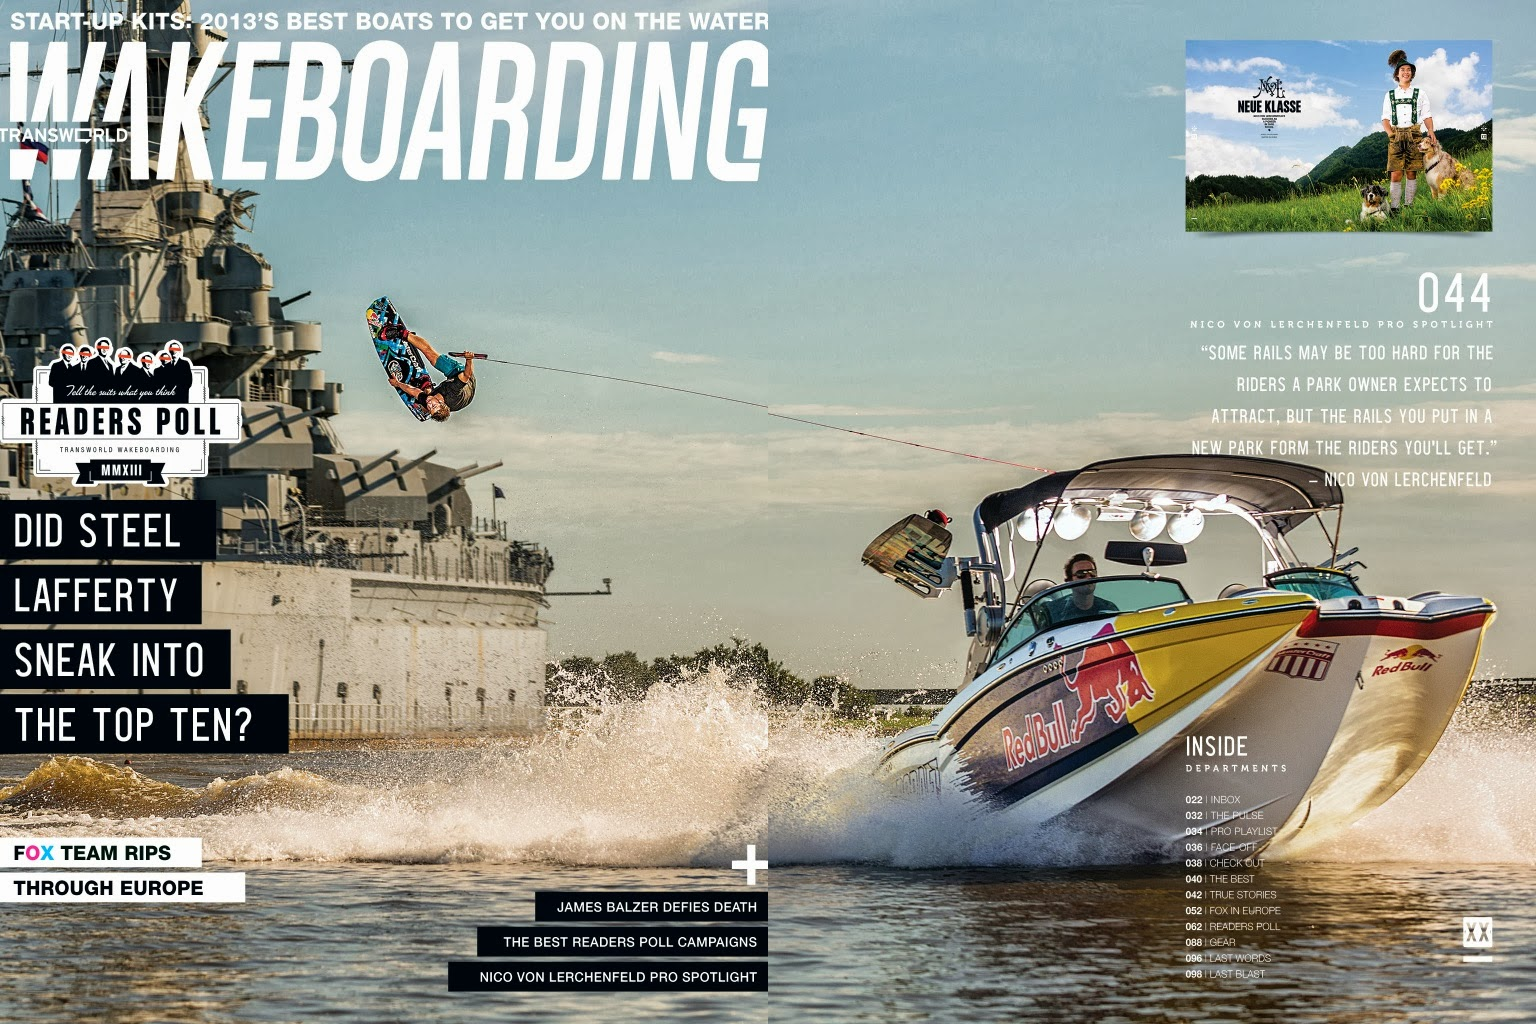 transworld wakeboarding cover behind the scenes and video